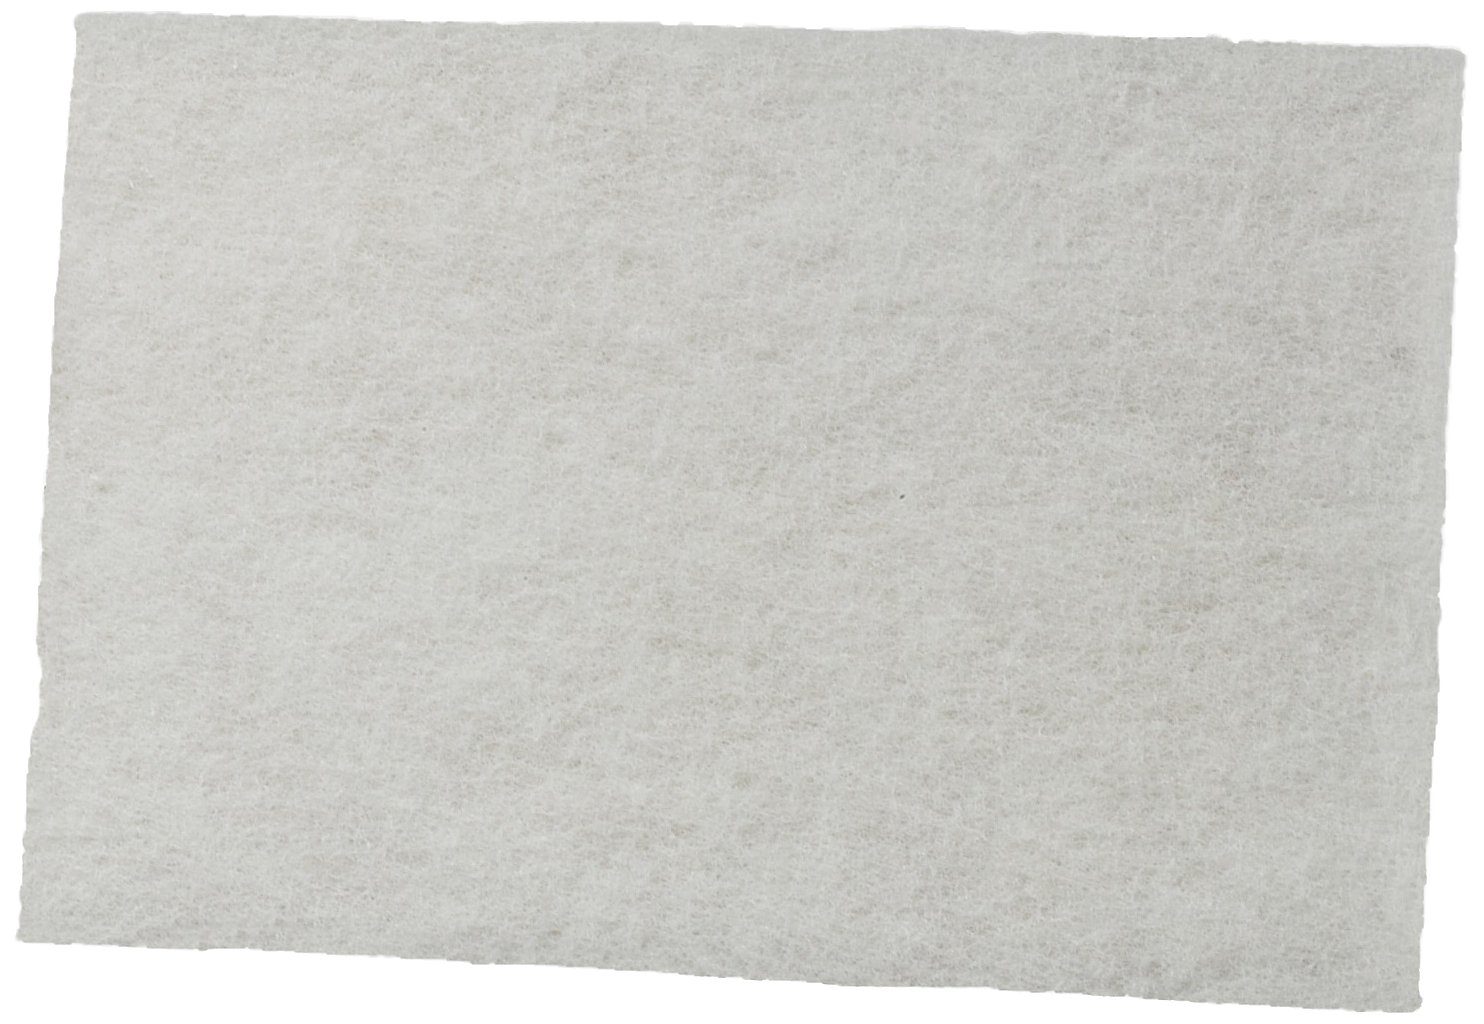 Scotch-Brite(TM) Light Cleansing Pad 7445B, Aluminum Silicate, 9'' Length x 6'' Width, White  (Pack of 60)